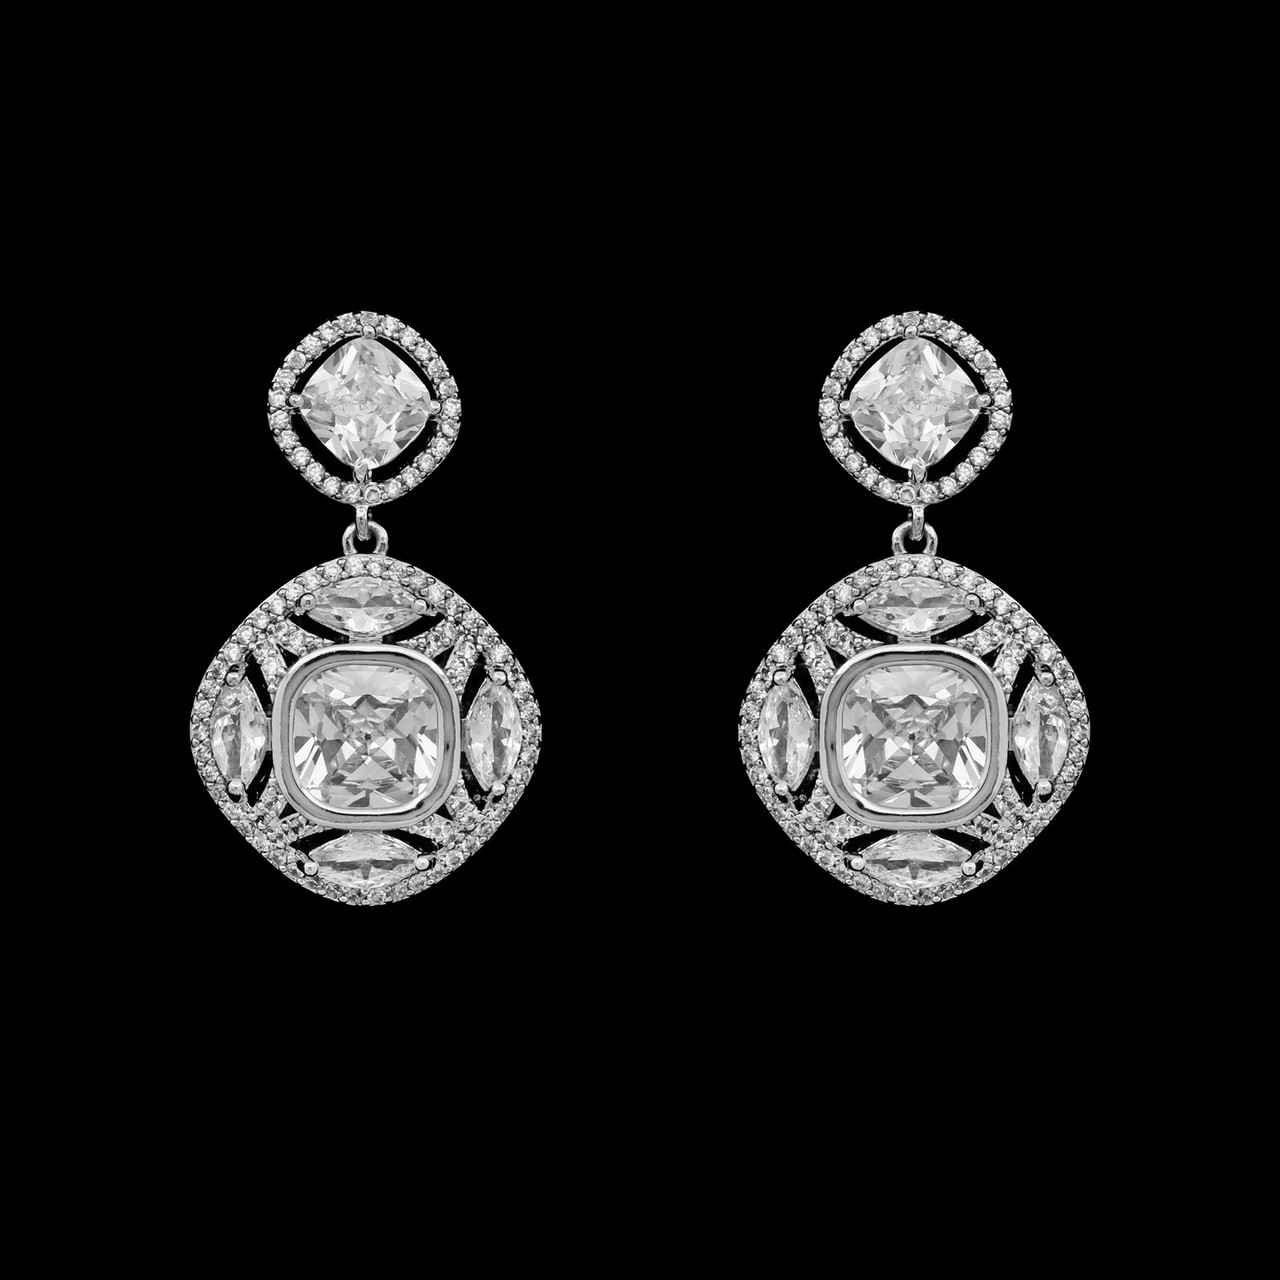 Formal Cubic Zirconia Earrings for Bridesmaids and Brides - #6200